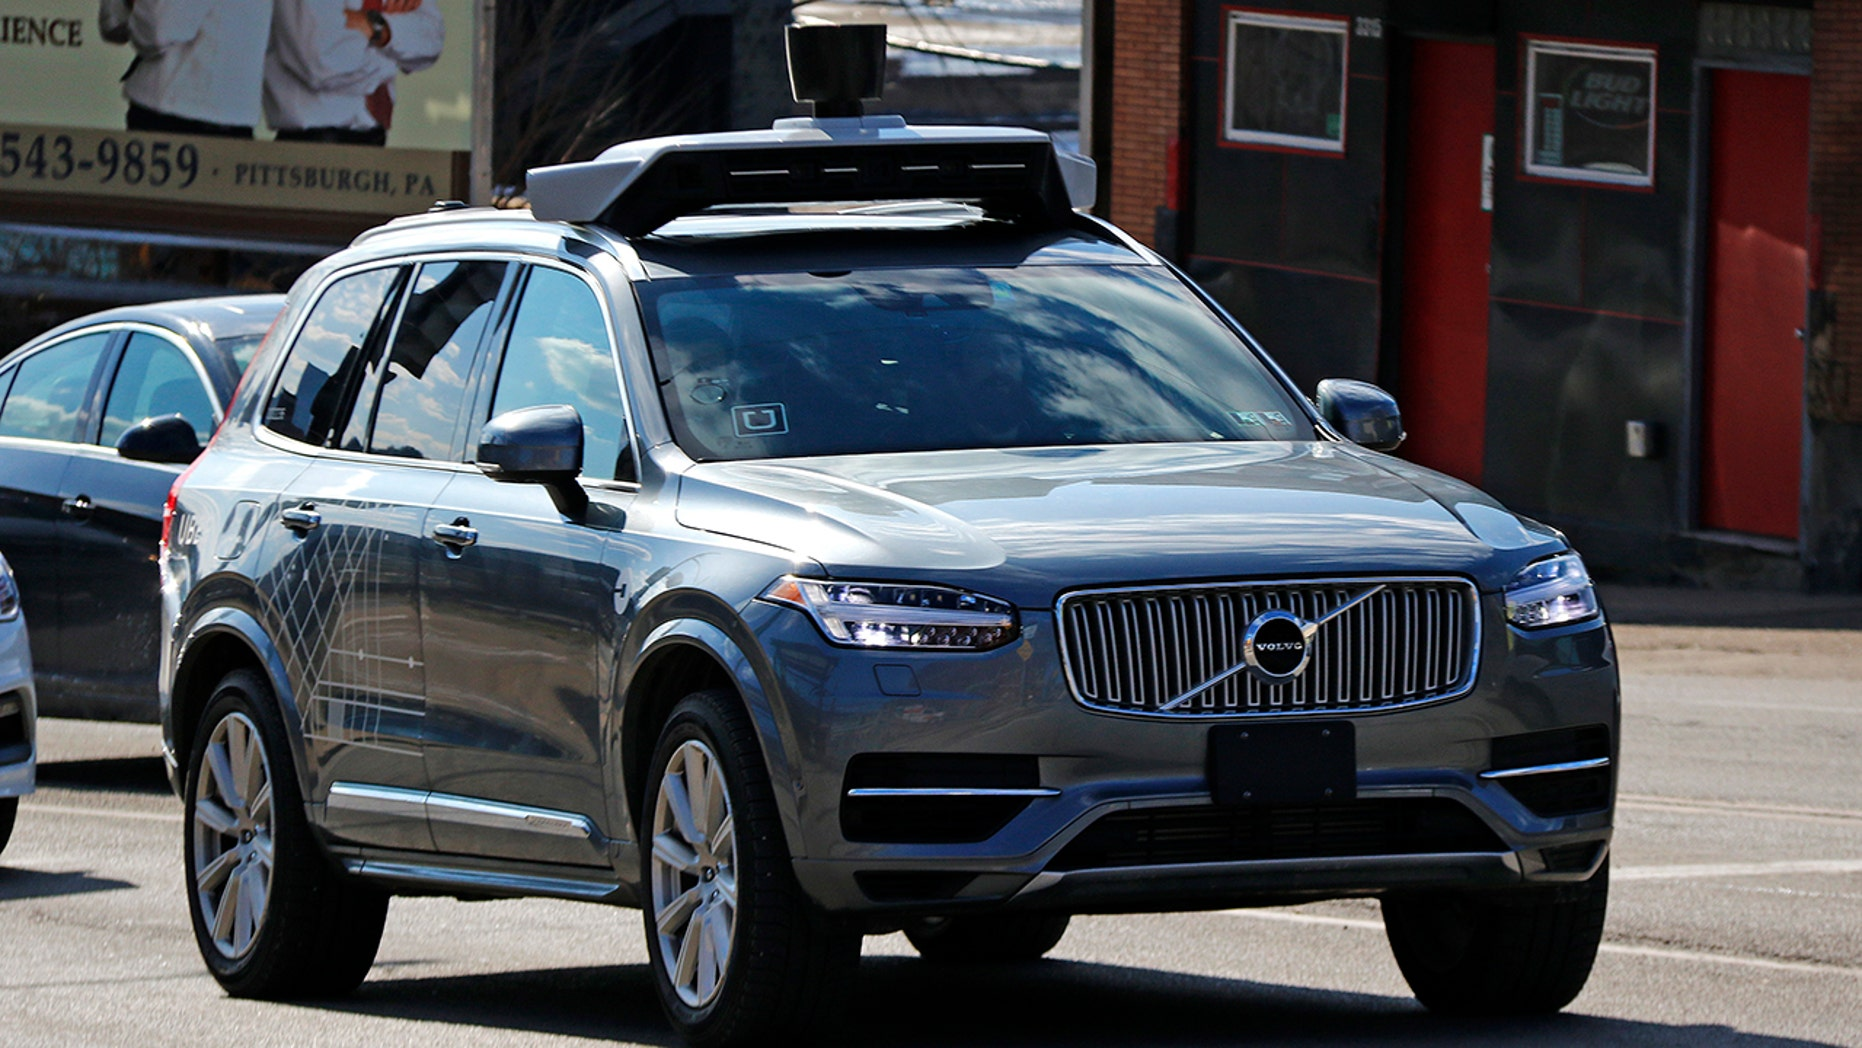 Uber gets approval from Pennsylvania to resume self-driving testing